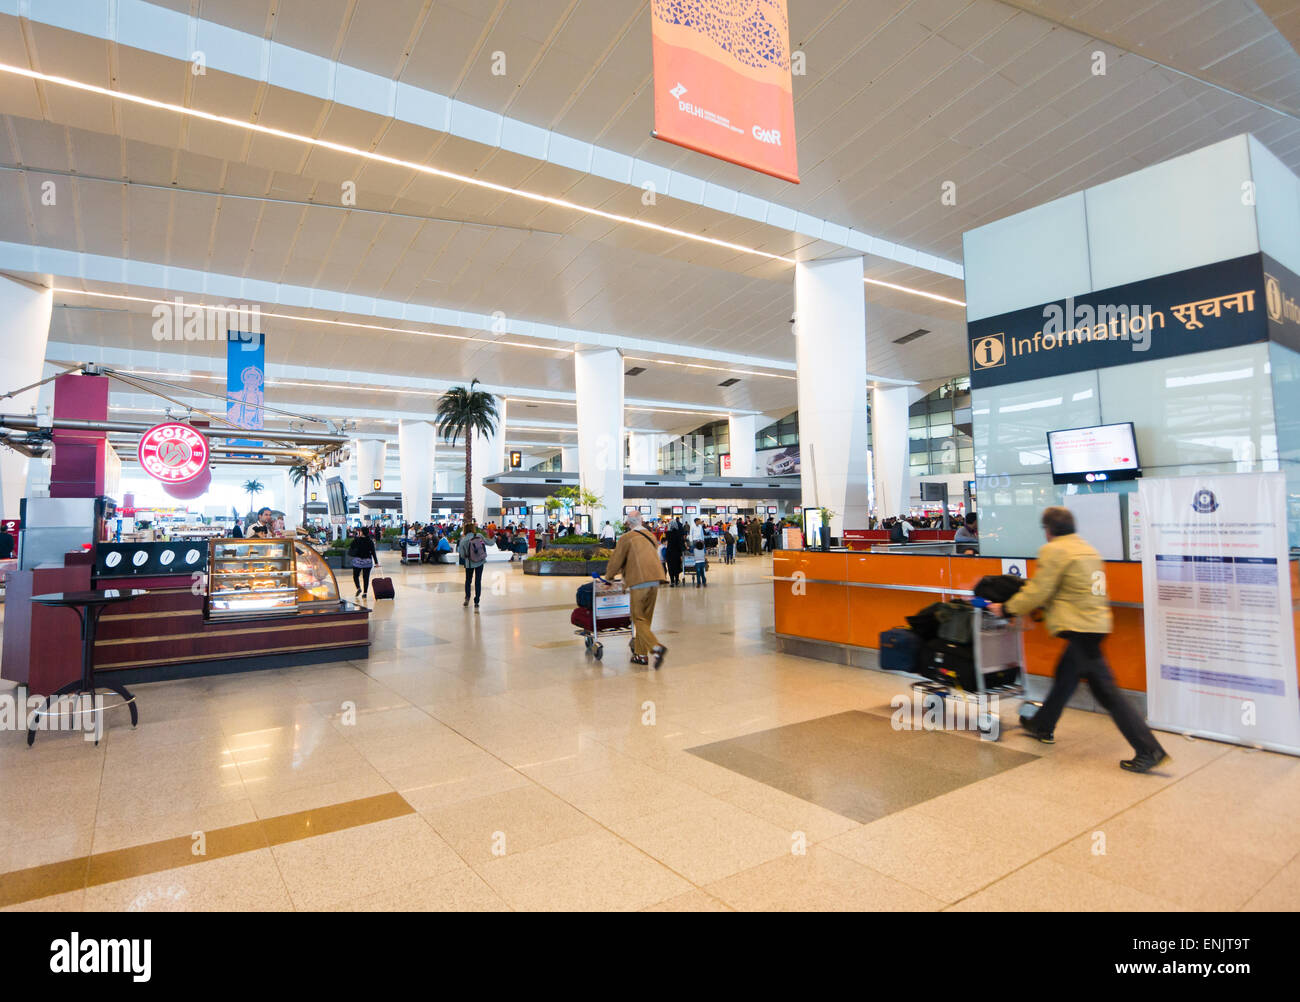 Indira Gandhi International airport in Delhi India Stock Photo